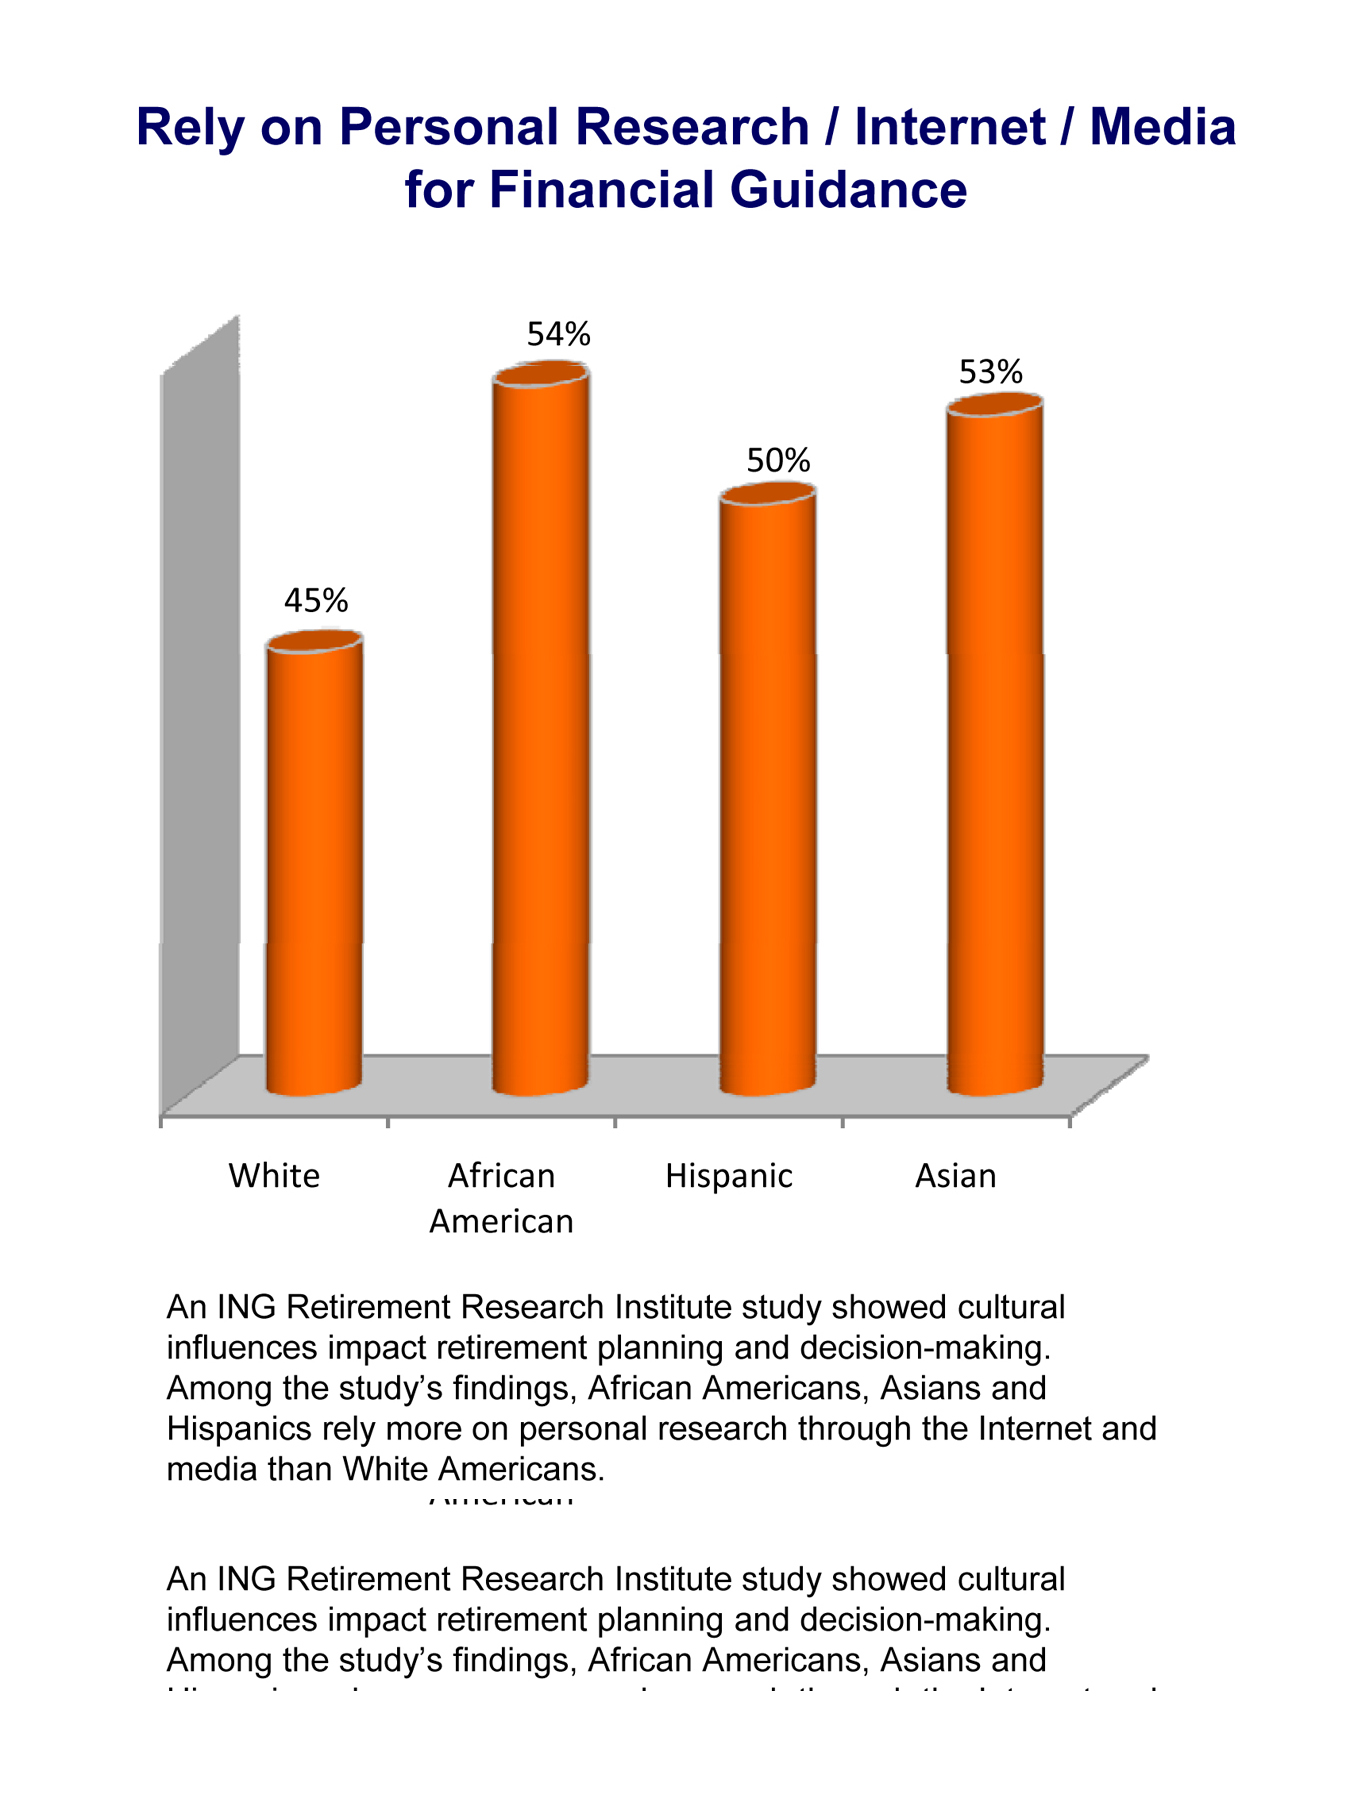 Cultural Influences Impact Retirement Planning & Decision-Making [REPORT]